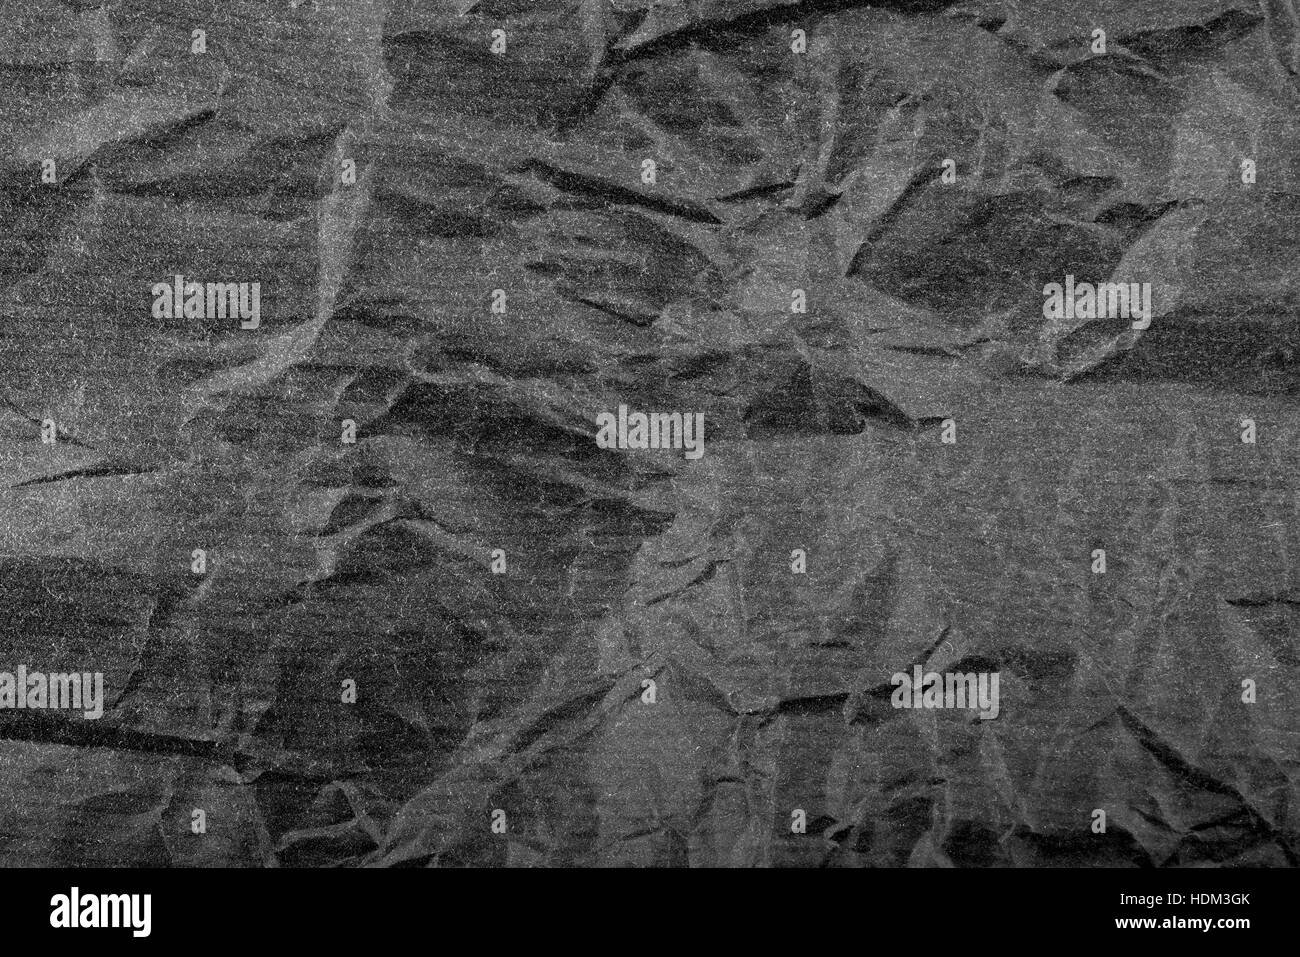 crumpled black paper,Black background - Stock Image